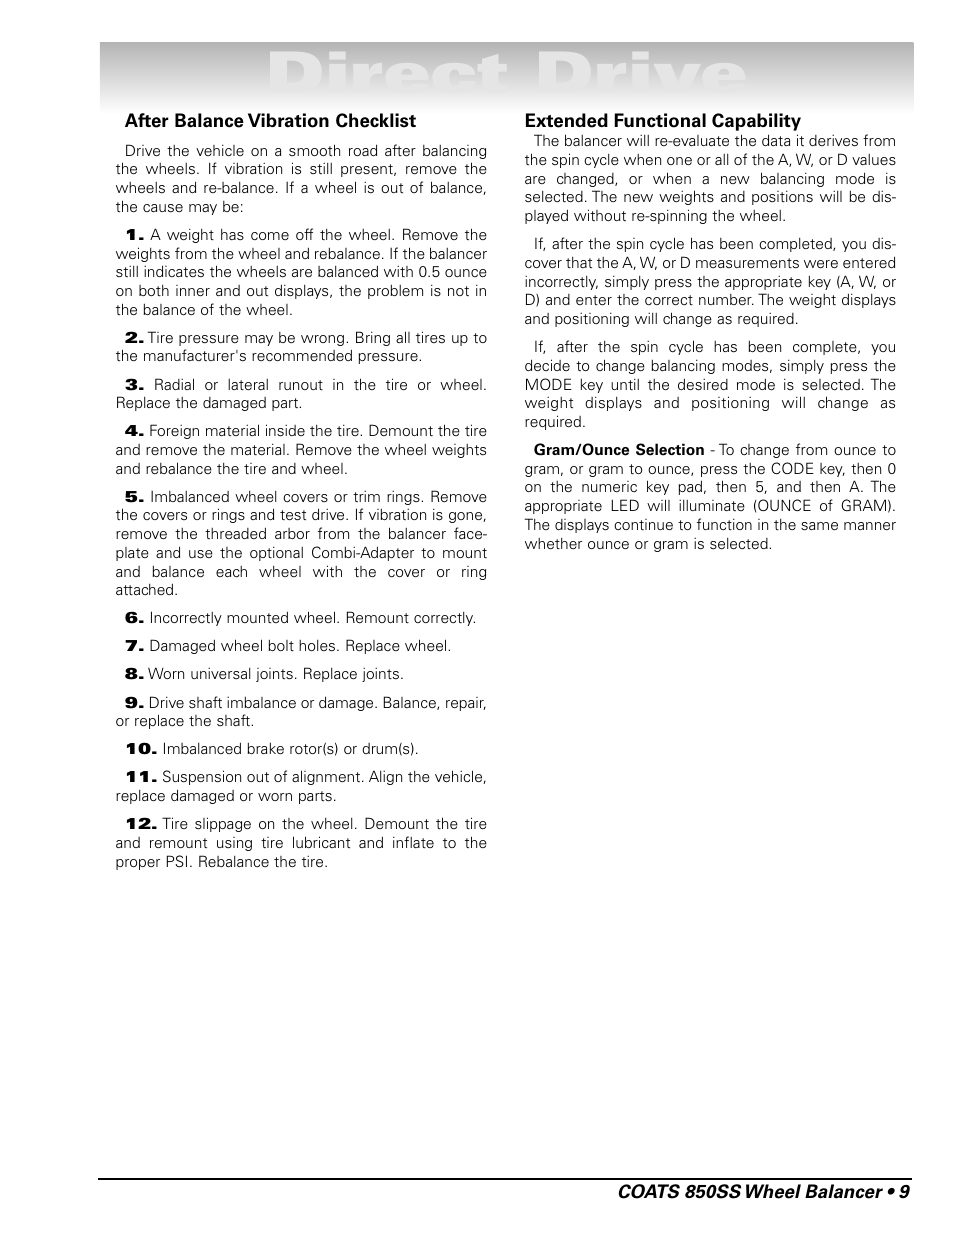 Direct drive | COATS 850 Solid State Wheel Balancer User Manual | Page 15 /  20